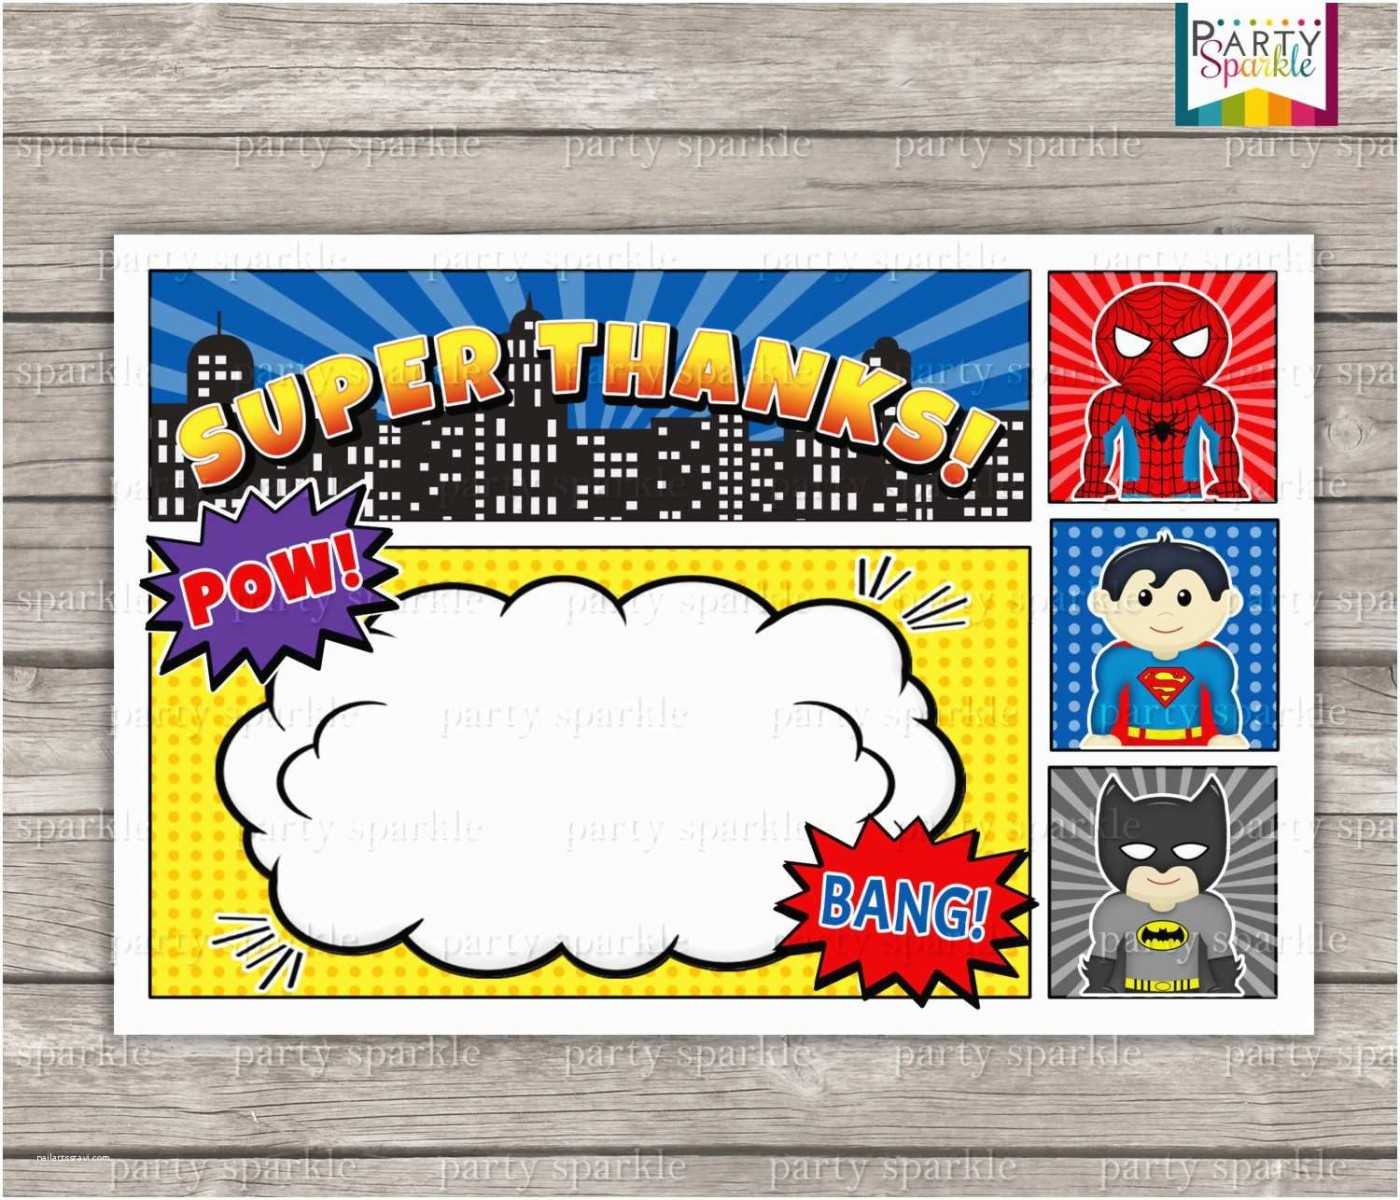 006 Remarkable Superhero Invitation Template Free Picture  Newspaper Party Birthday Invite1400